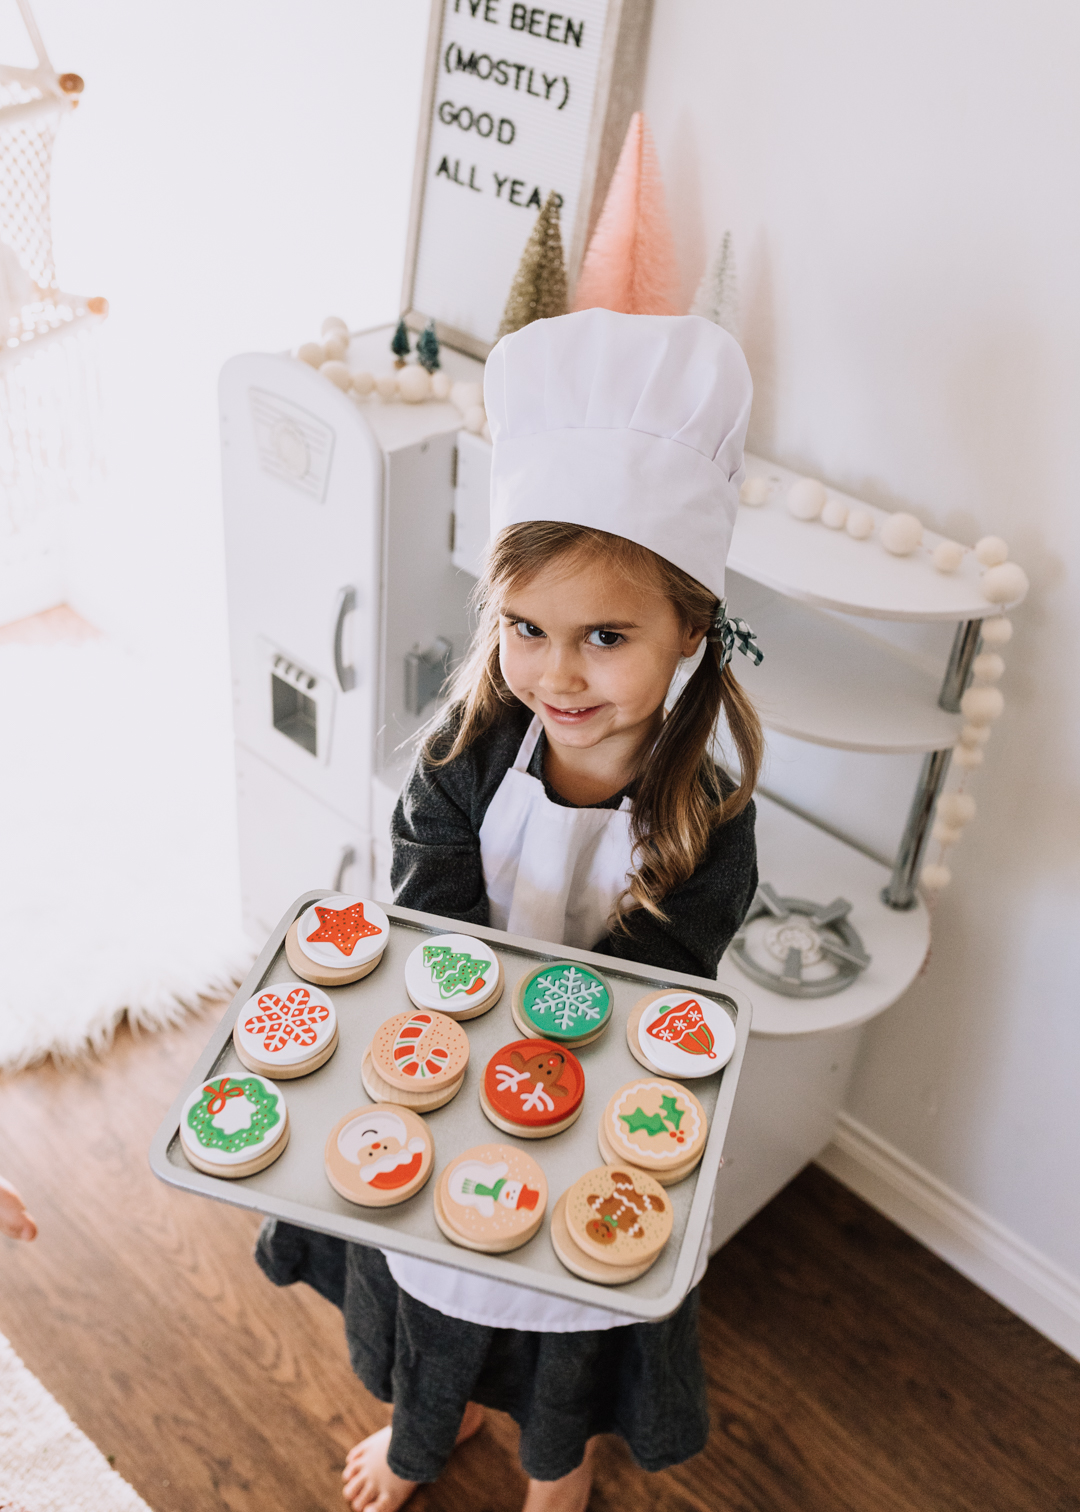 pretend christmas cooking baking with melissa and doug set from kohl's | thelovedesignedlife.com @kohls #ad #christmascookies #imaginaryplay #christmastime #holidaygifts